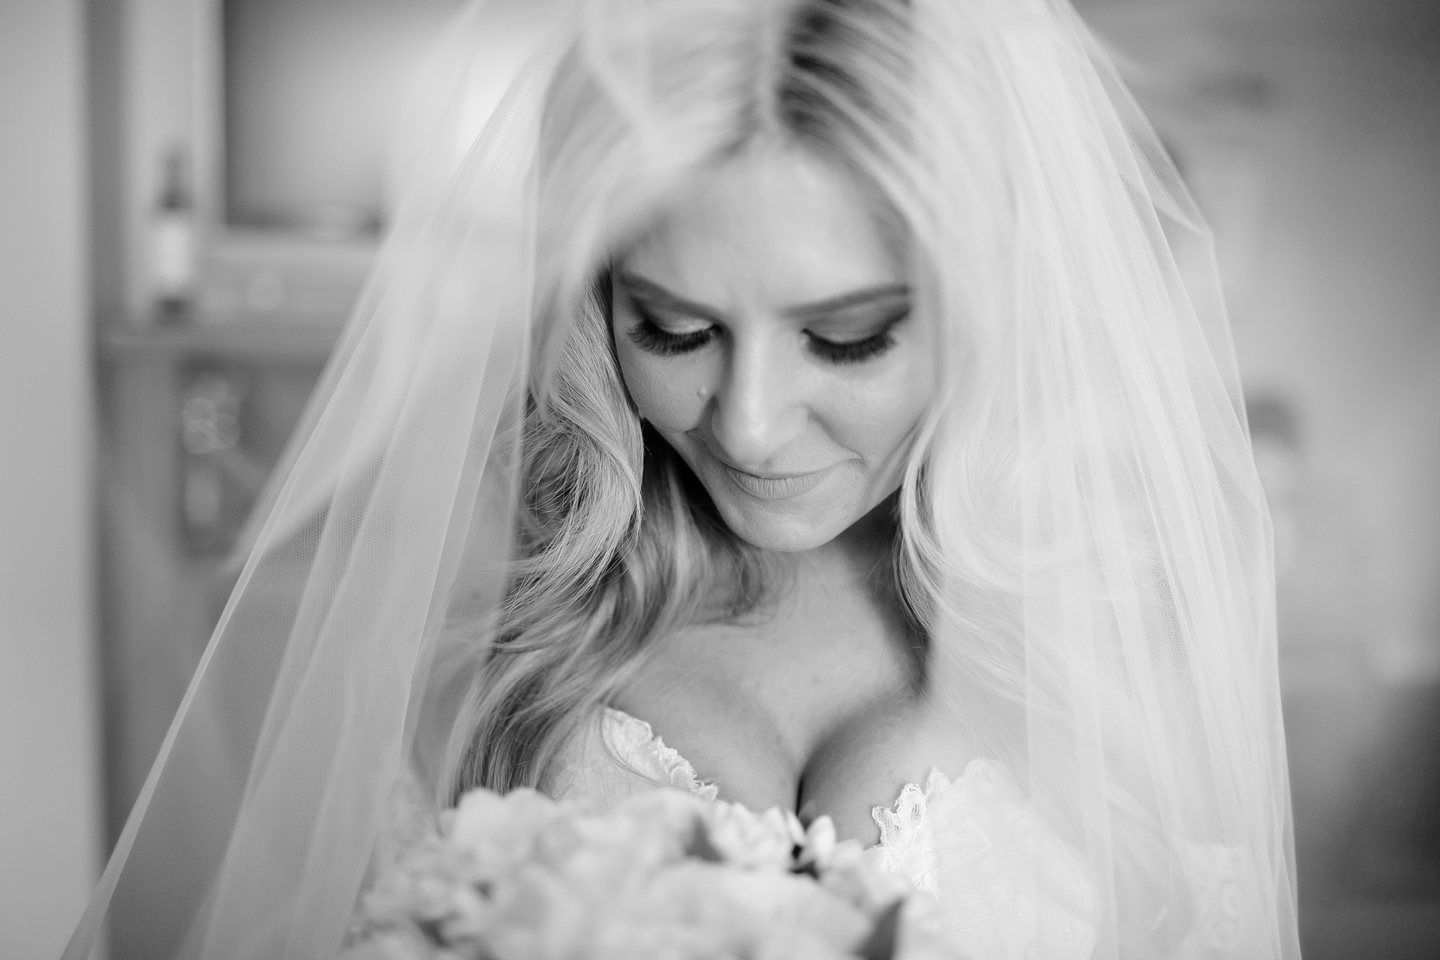 Bec & Callum Real Wedding - THe Bride #brideshot #bridephoto #weddingphoto #weddings